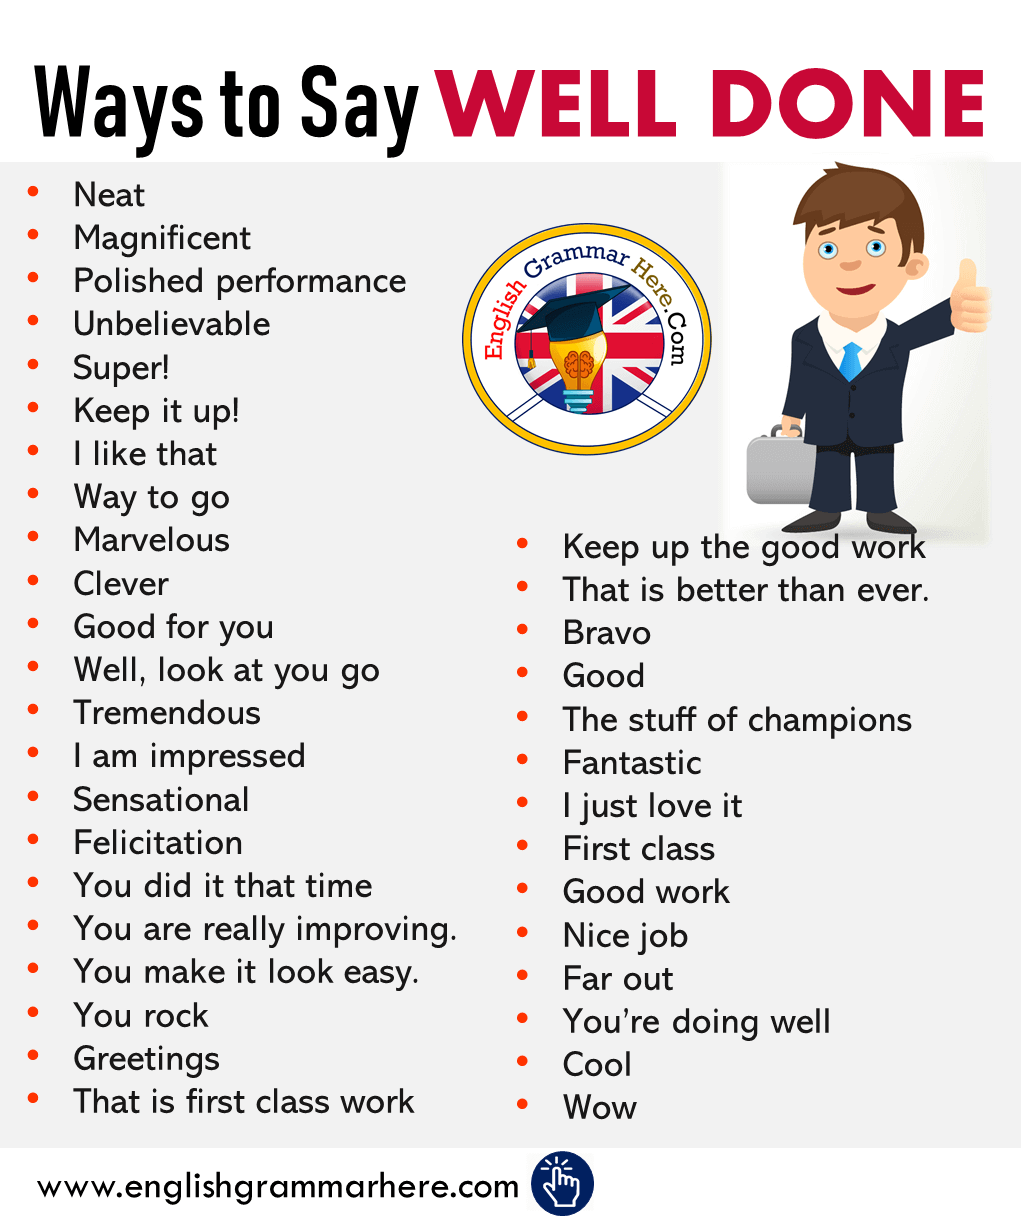 English Different Ways to Say WELL DONE